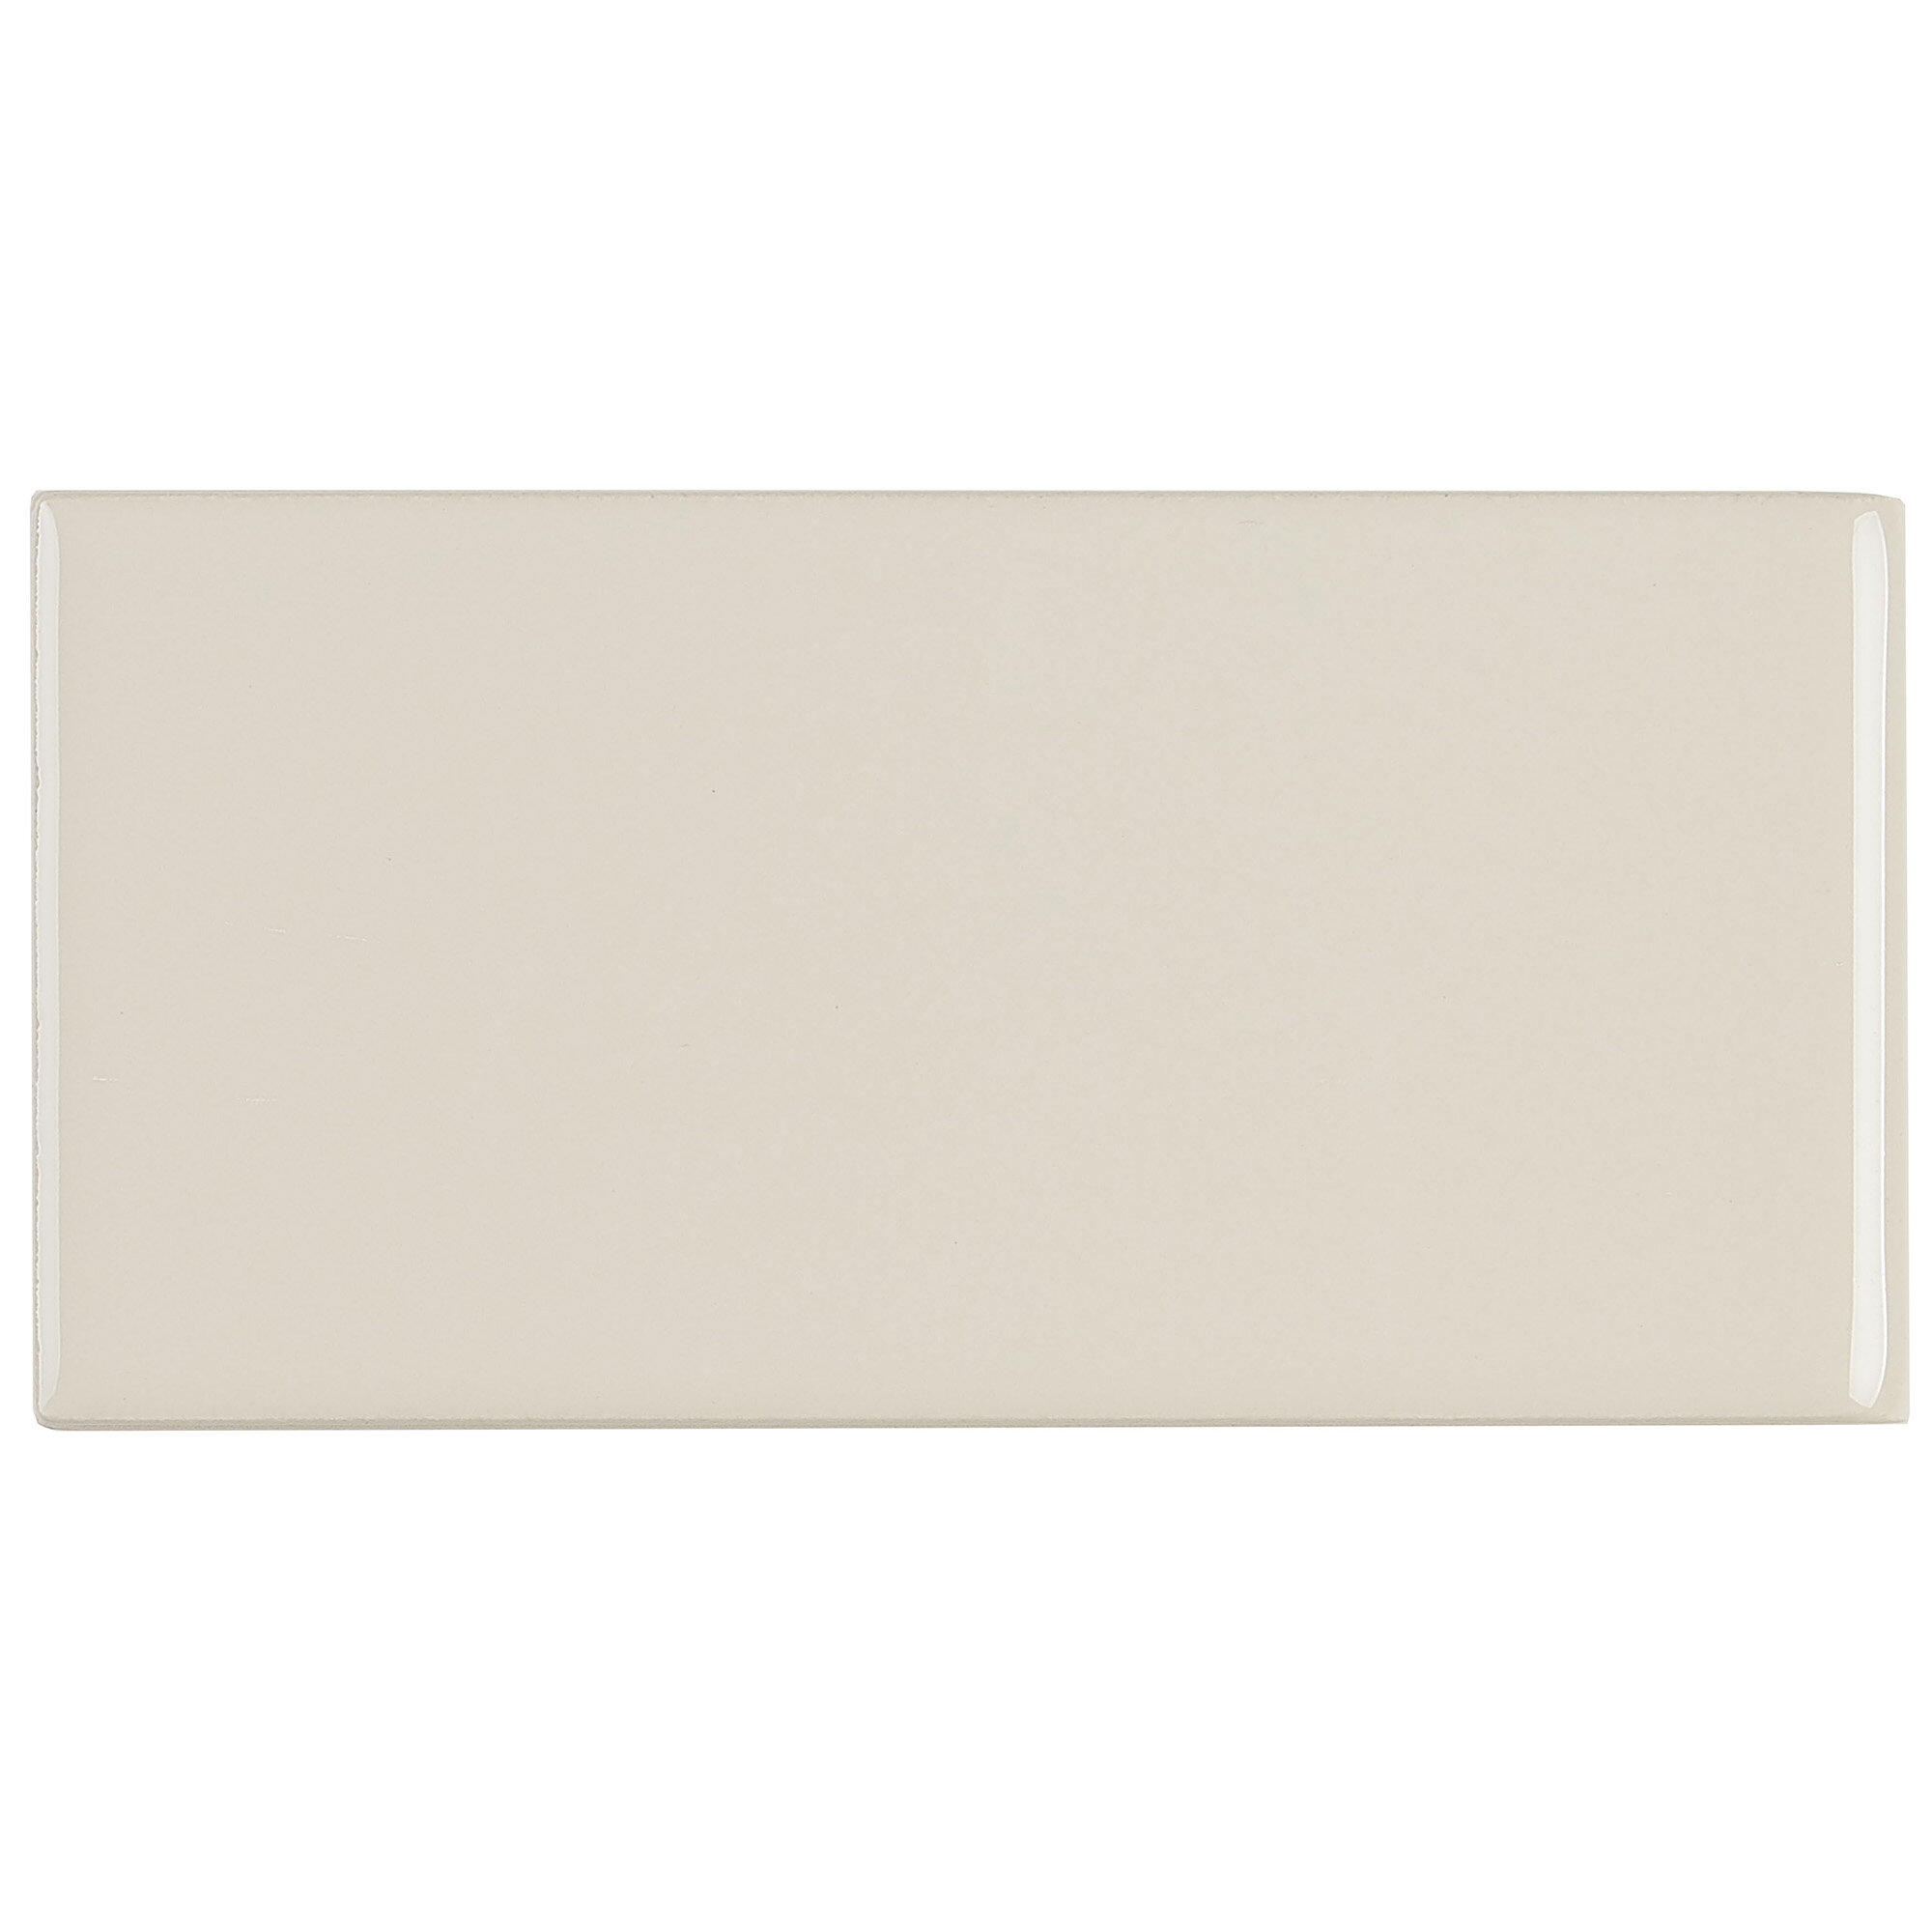 Itona Tile Guilford 6 X 3 Ceramic Bullnose Tile Trim In Almond Wayfair